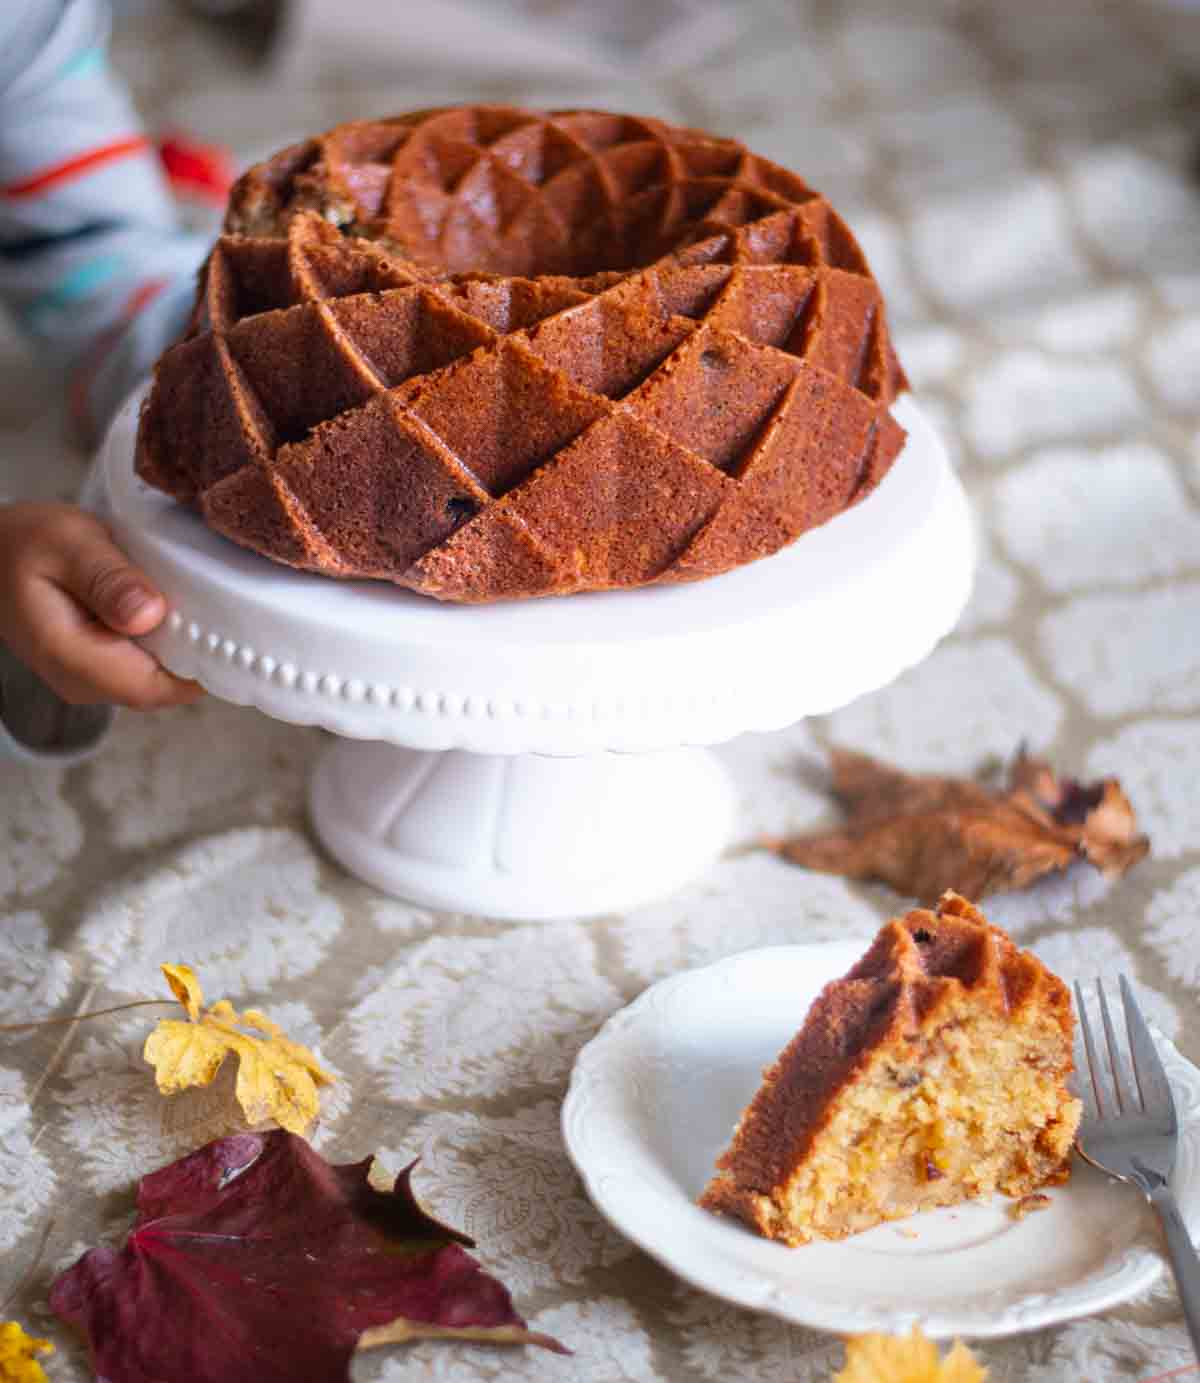 Apple bundt cake on a white cake stand with a single slice on a plate in the foreground